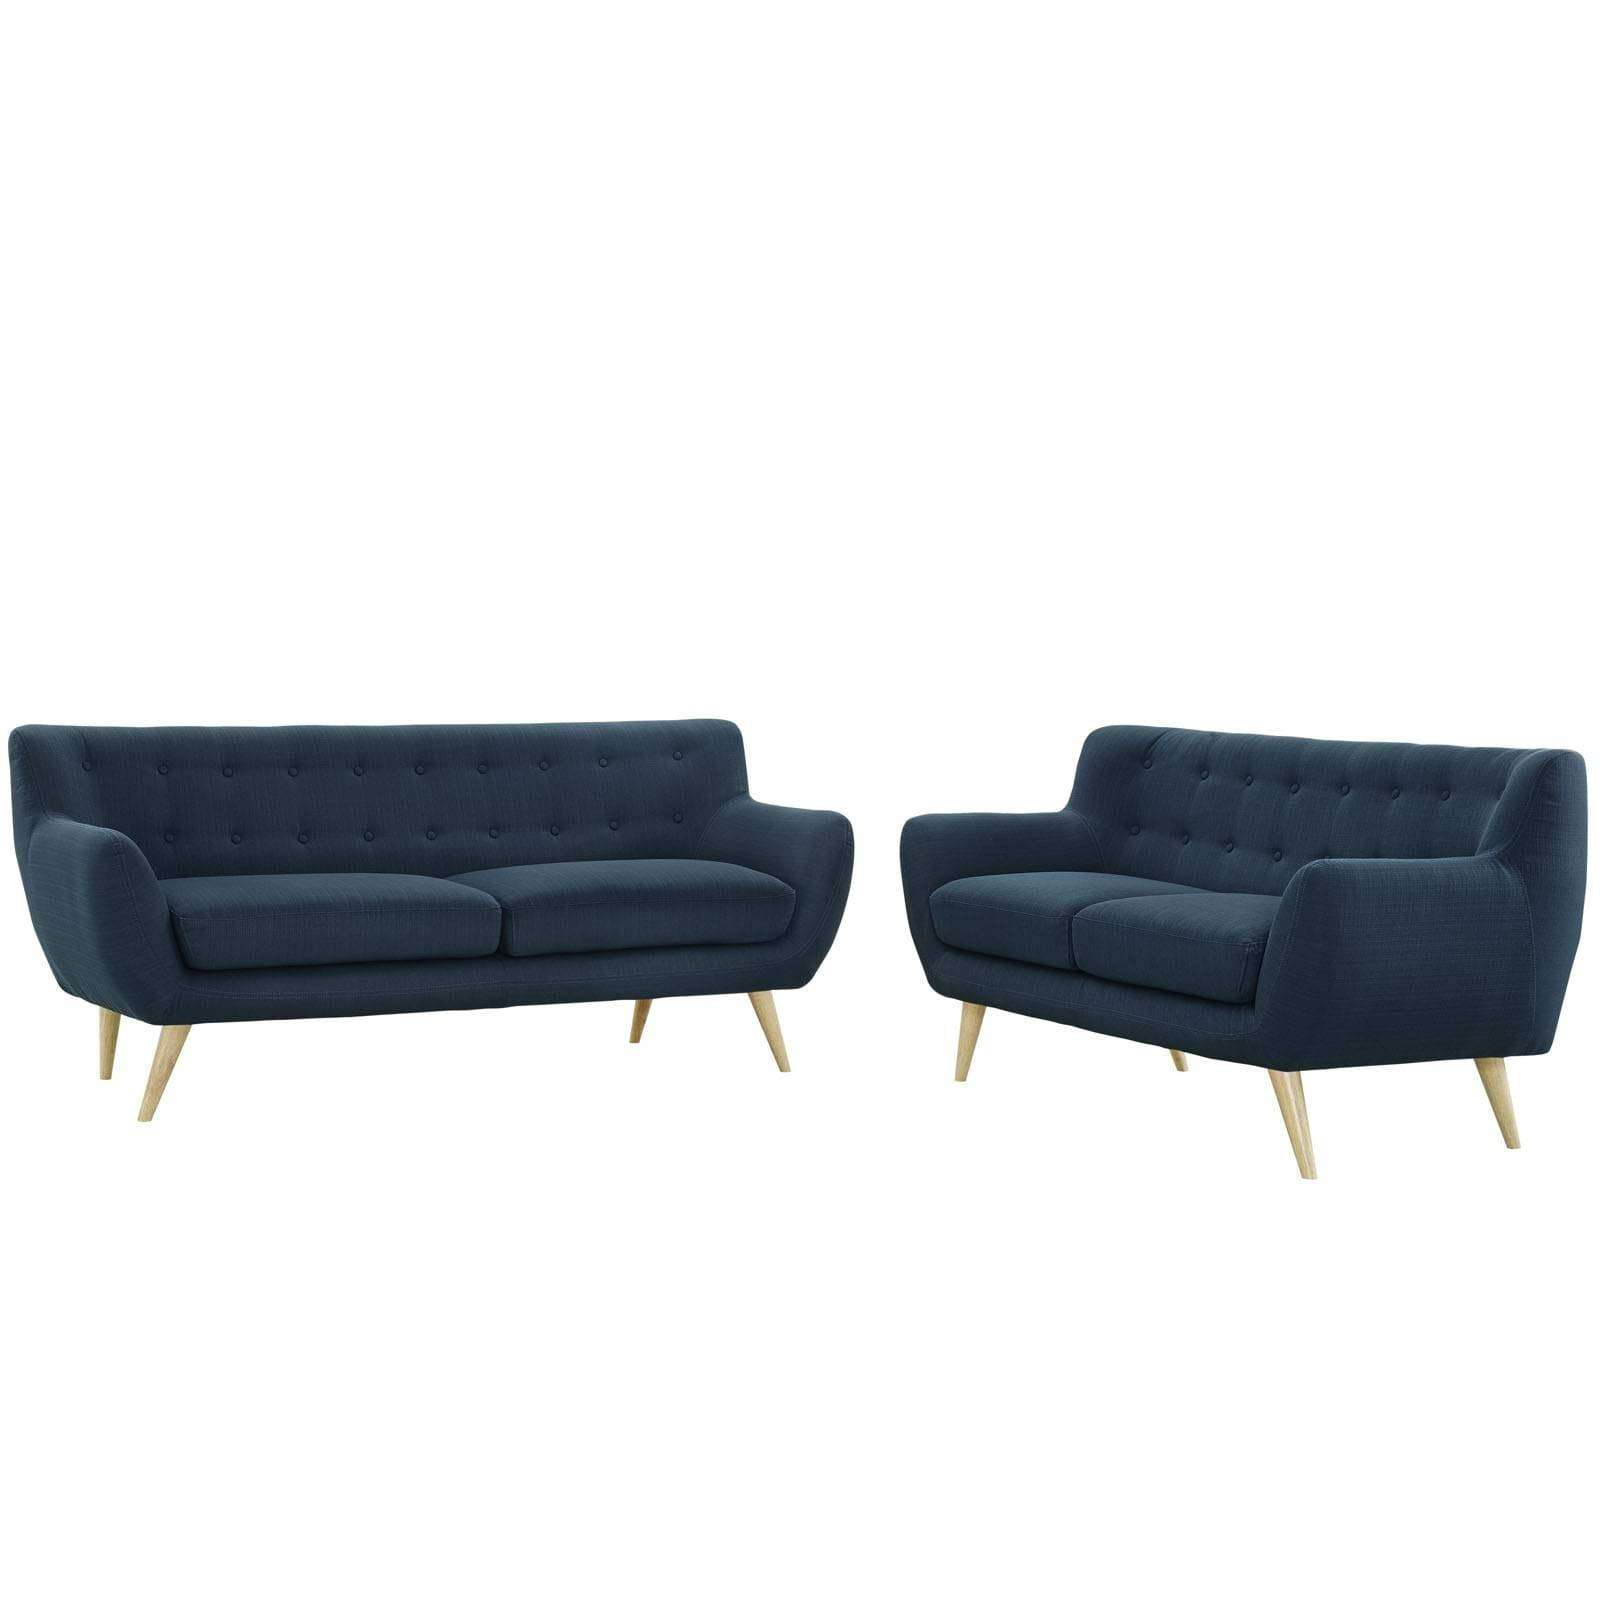 Remark Living Room Set 2 Piece